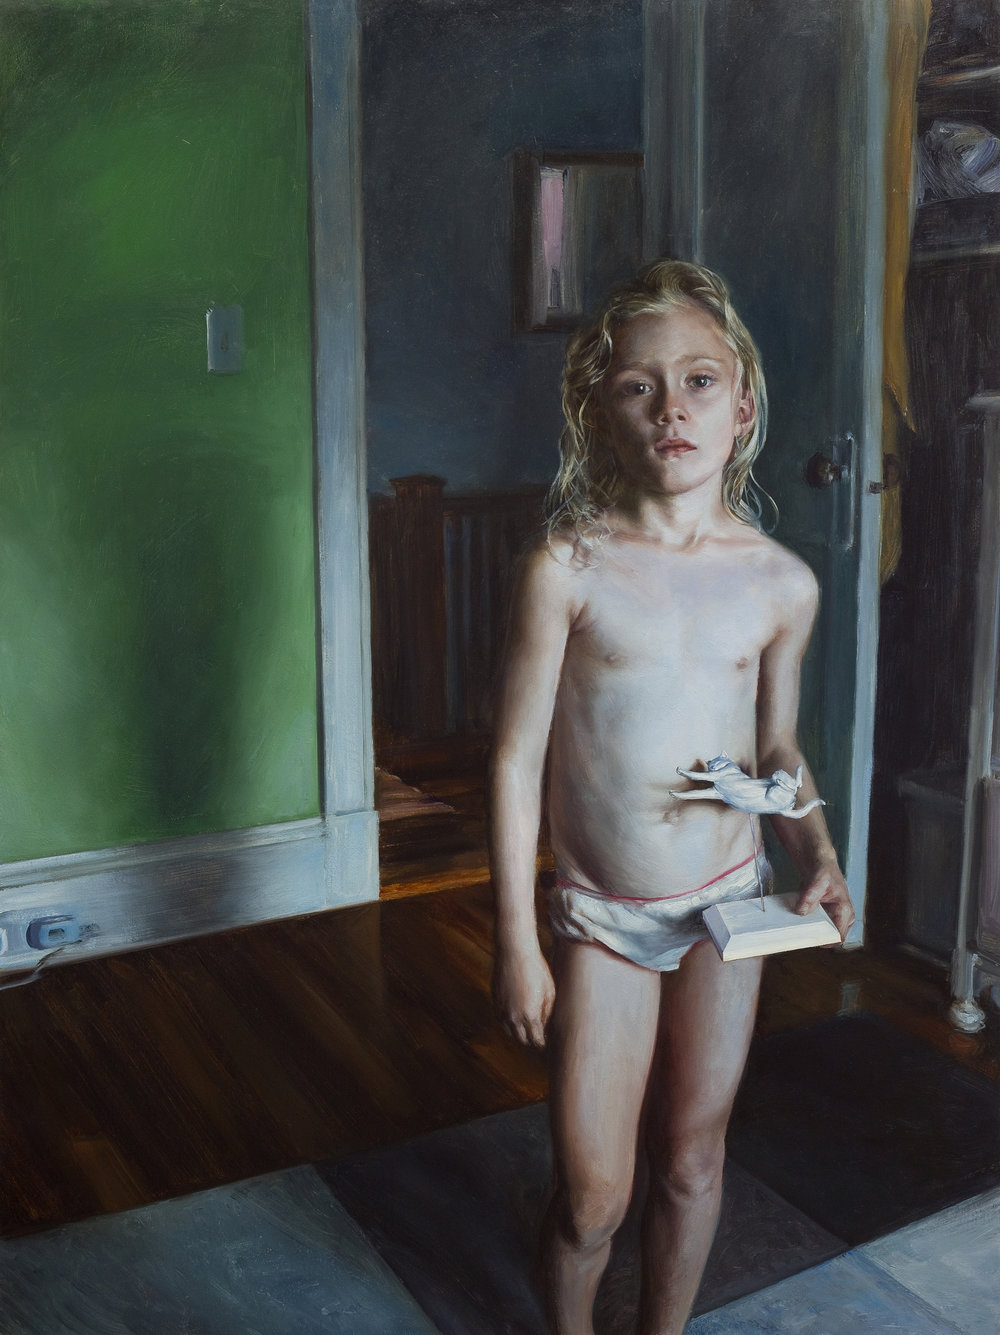 Moonstone,  2015 oil on linen on aluminum panel, 46 x 34 1/2 inches